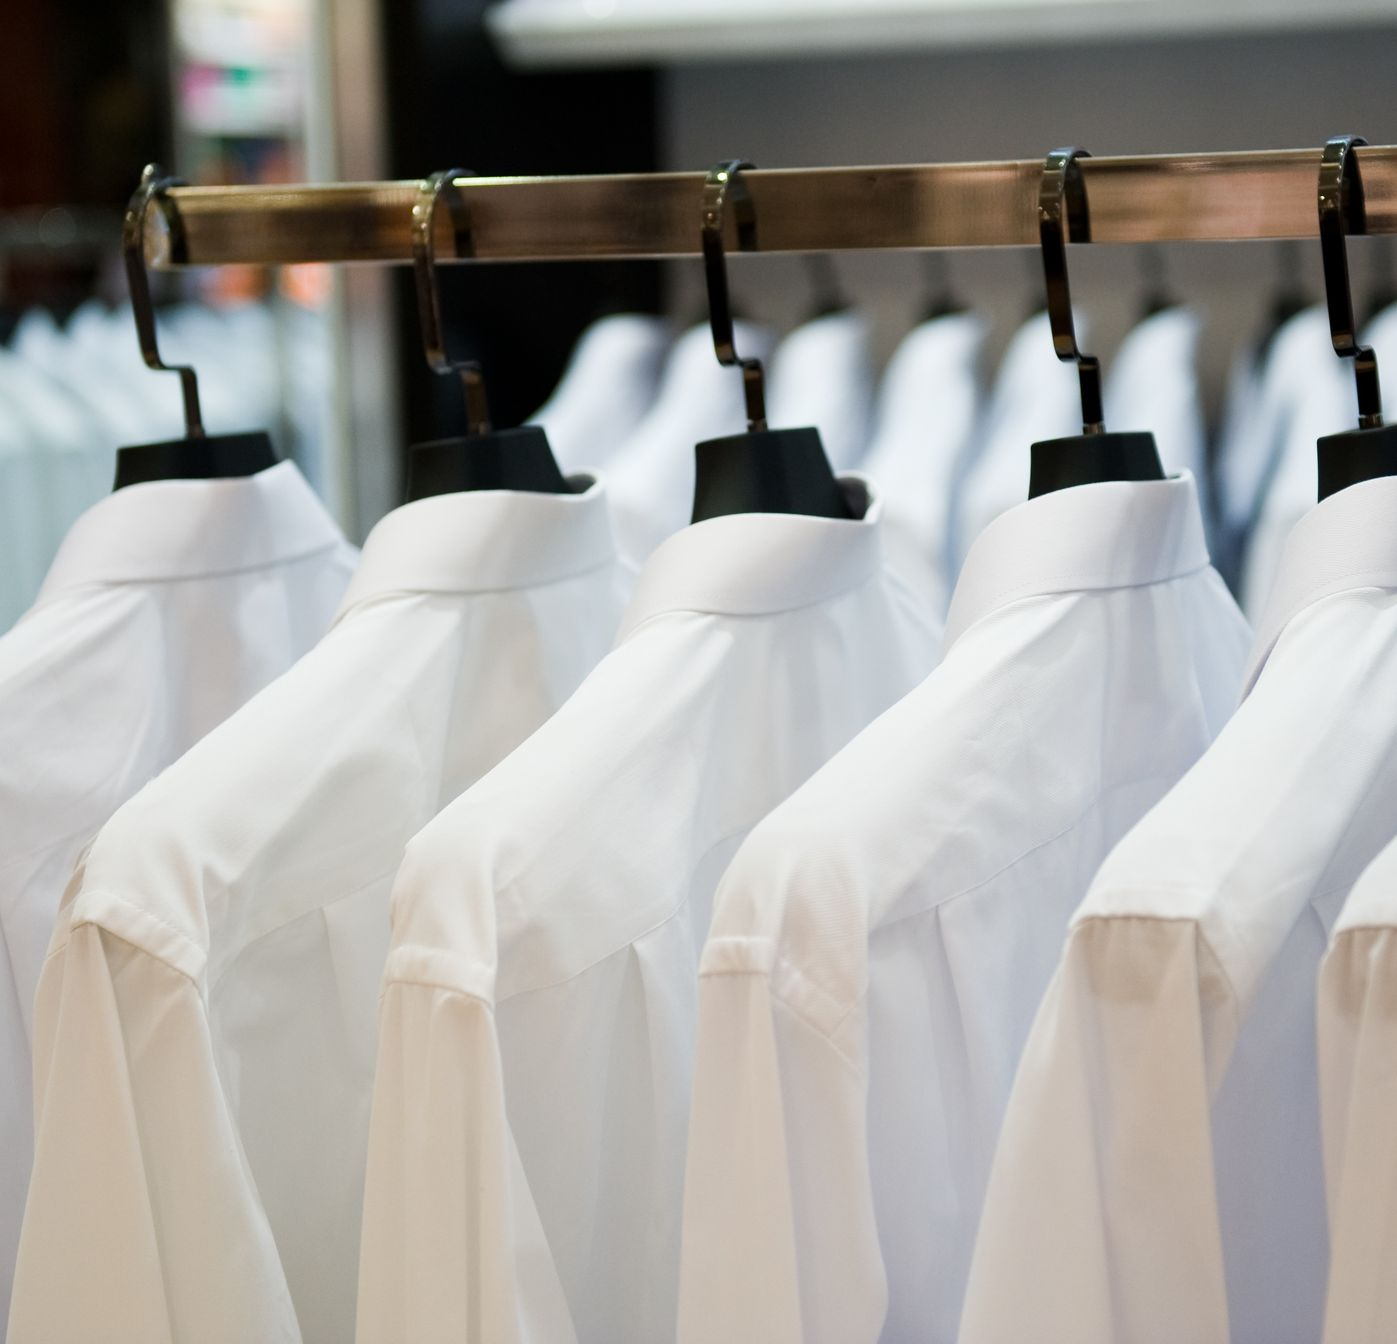 Shirts Dry Cleaned or Laundered | Prestige Cleaners Dry Cleaning Scottsdale